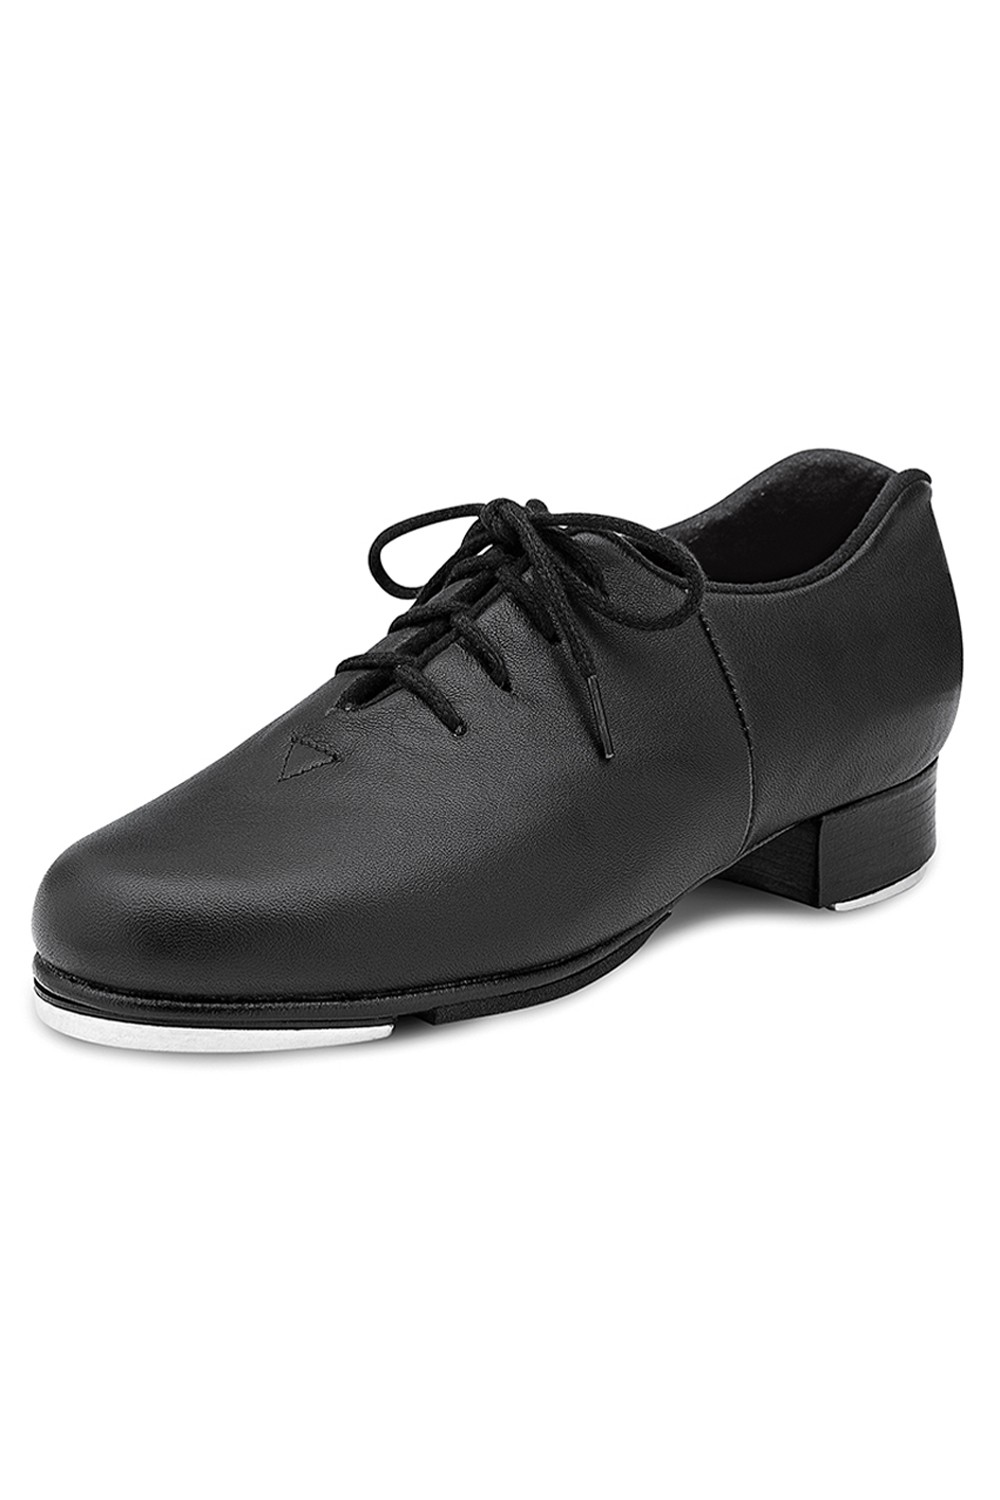 Audeo Jazz Tap - Girls Girl's Tap Shoes